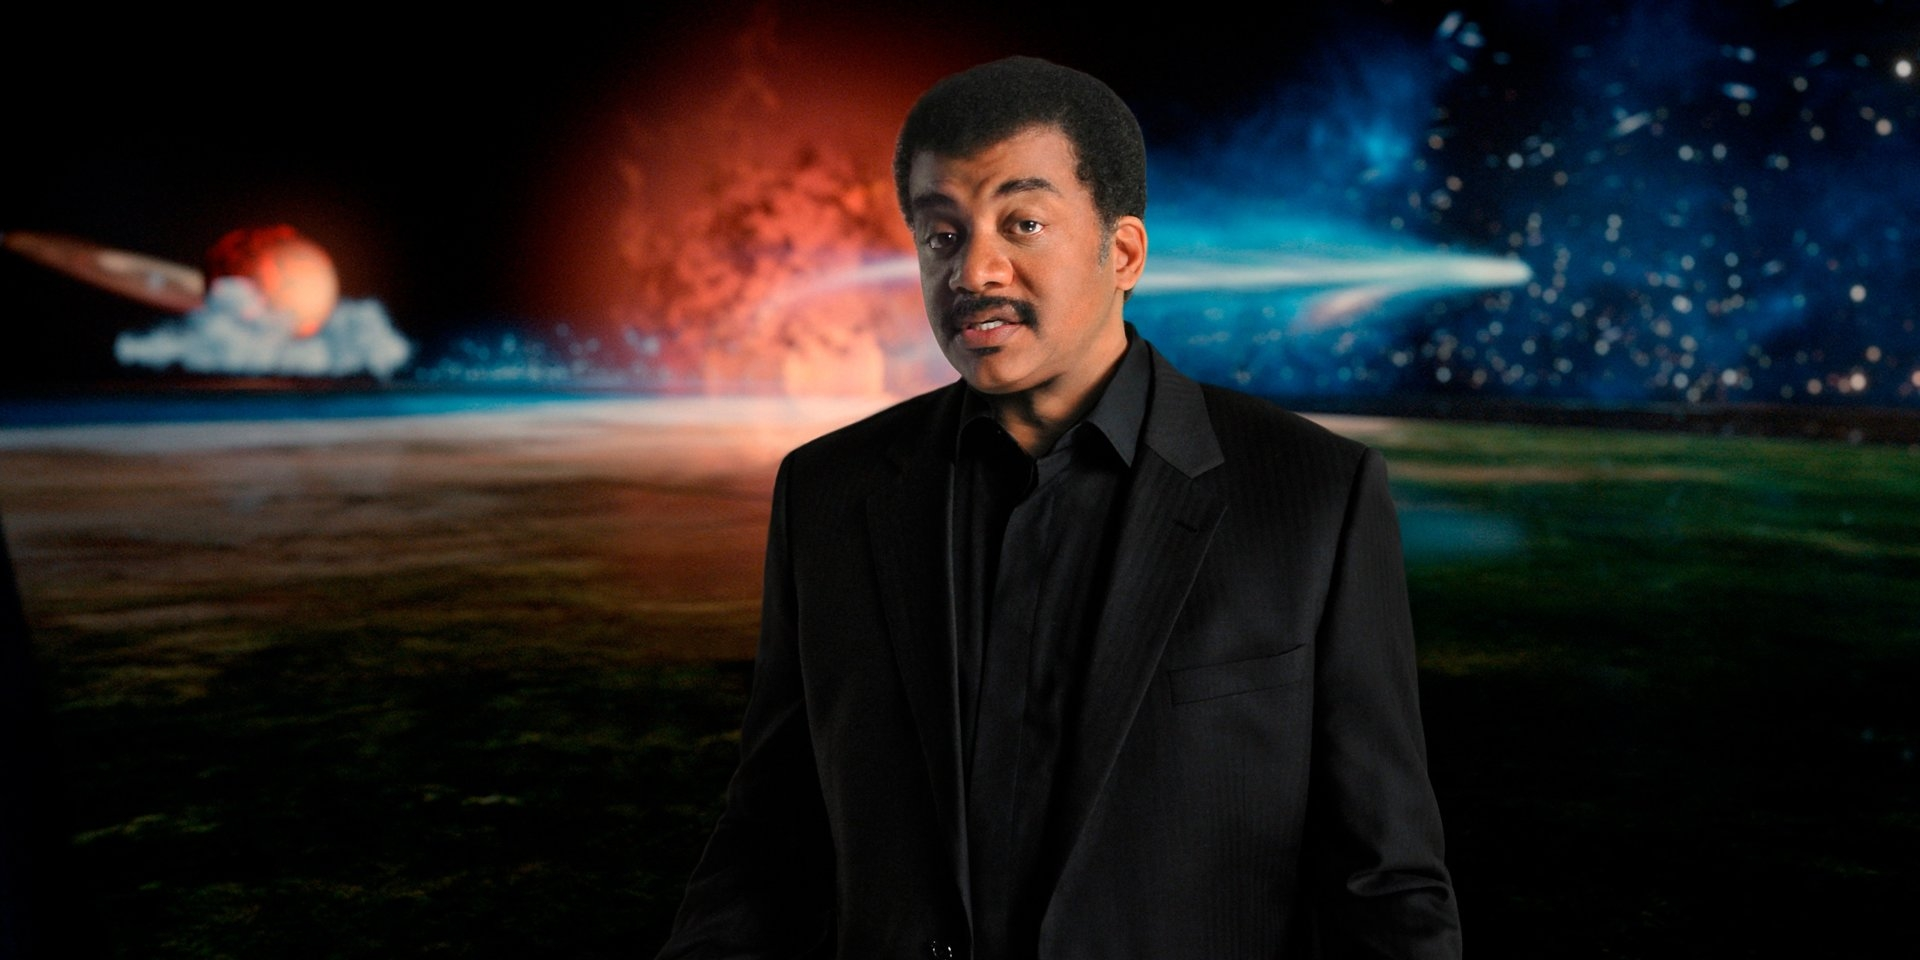 Neil deGrasse Tyson under investigation at Fox after 3 women accuse him of sexual misconduct